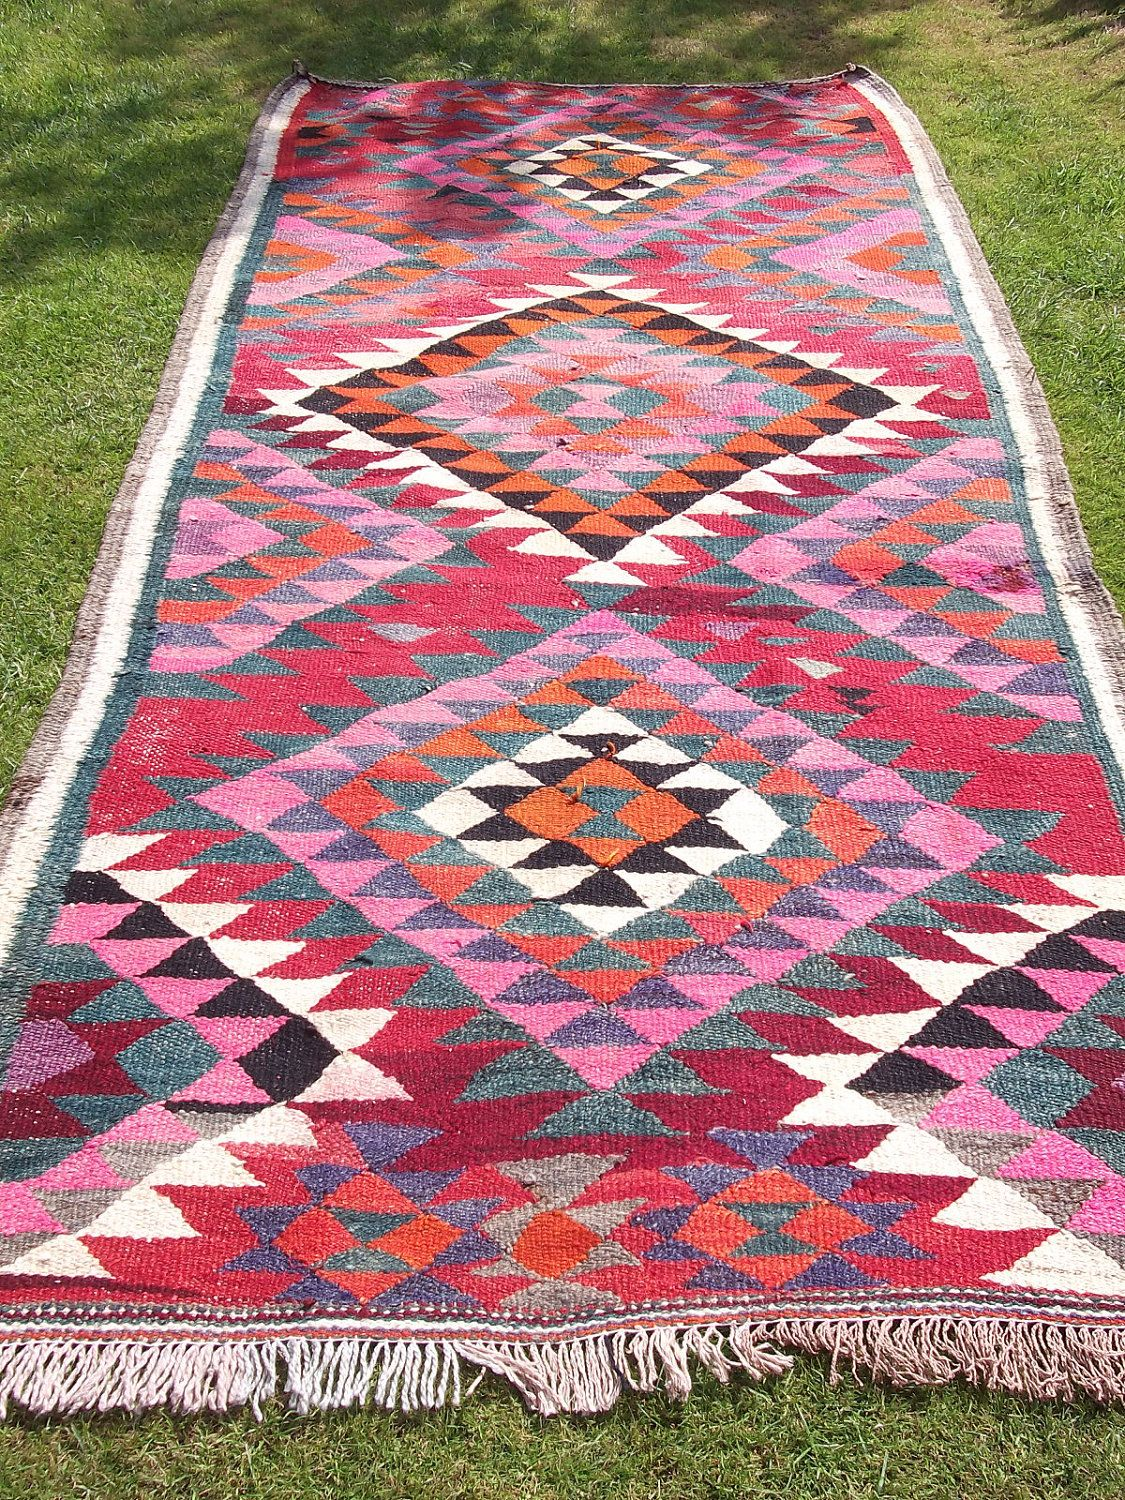 Bright Rugs Vibrant Woven Persian Kilim 8 Ft X 4 Ft Bright Wool Rug